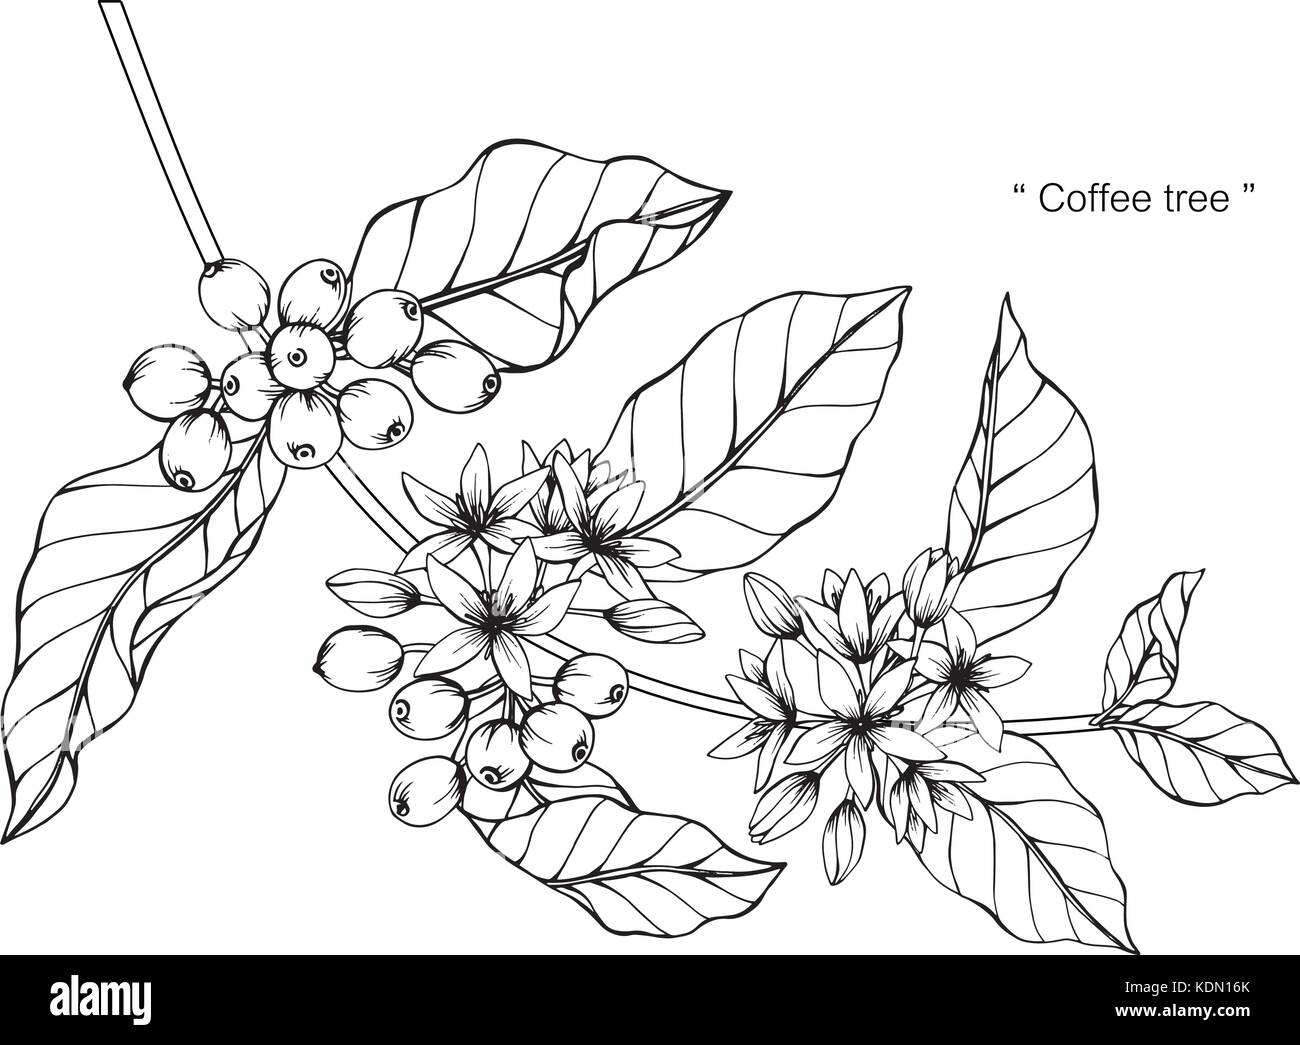 Coffee Tree Drawing Illustration Black And White With Line Art